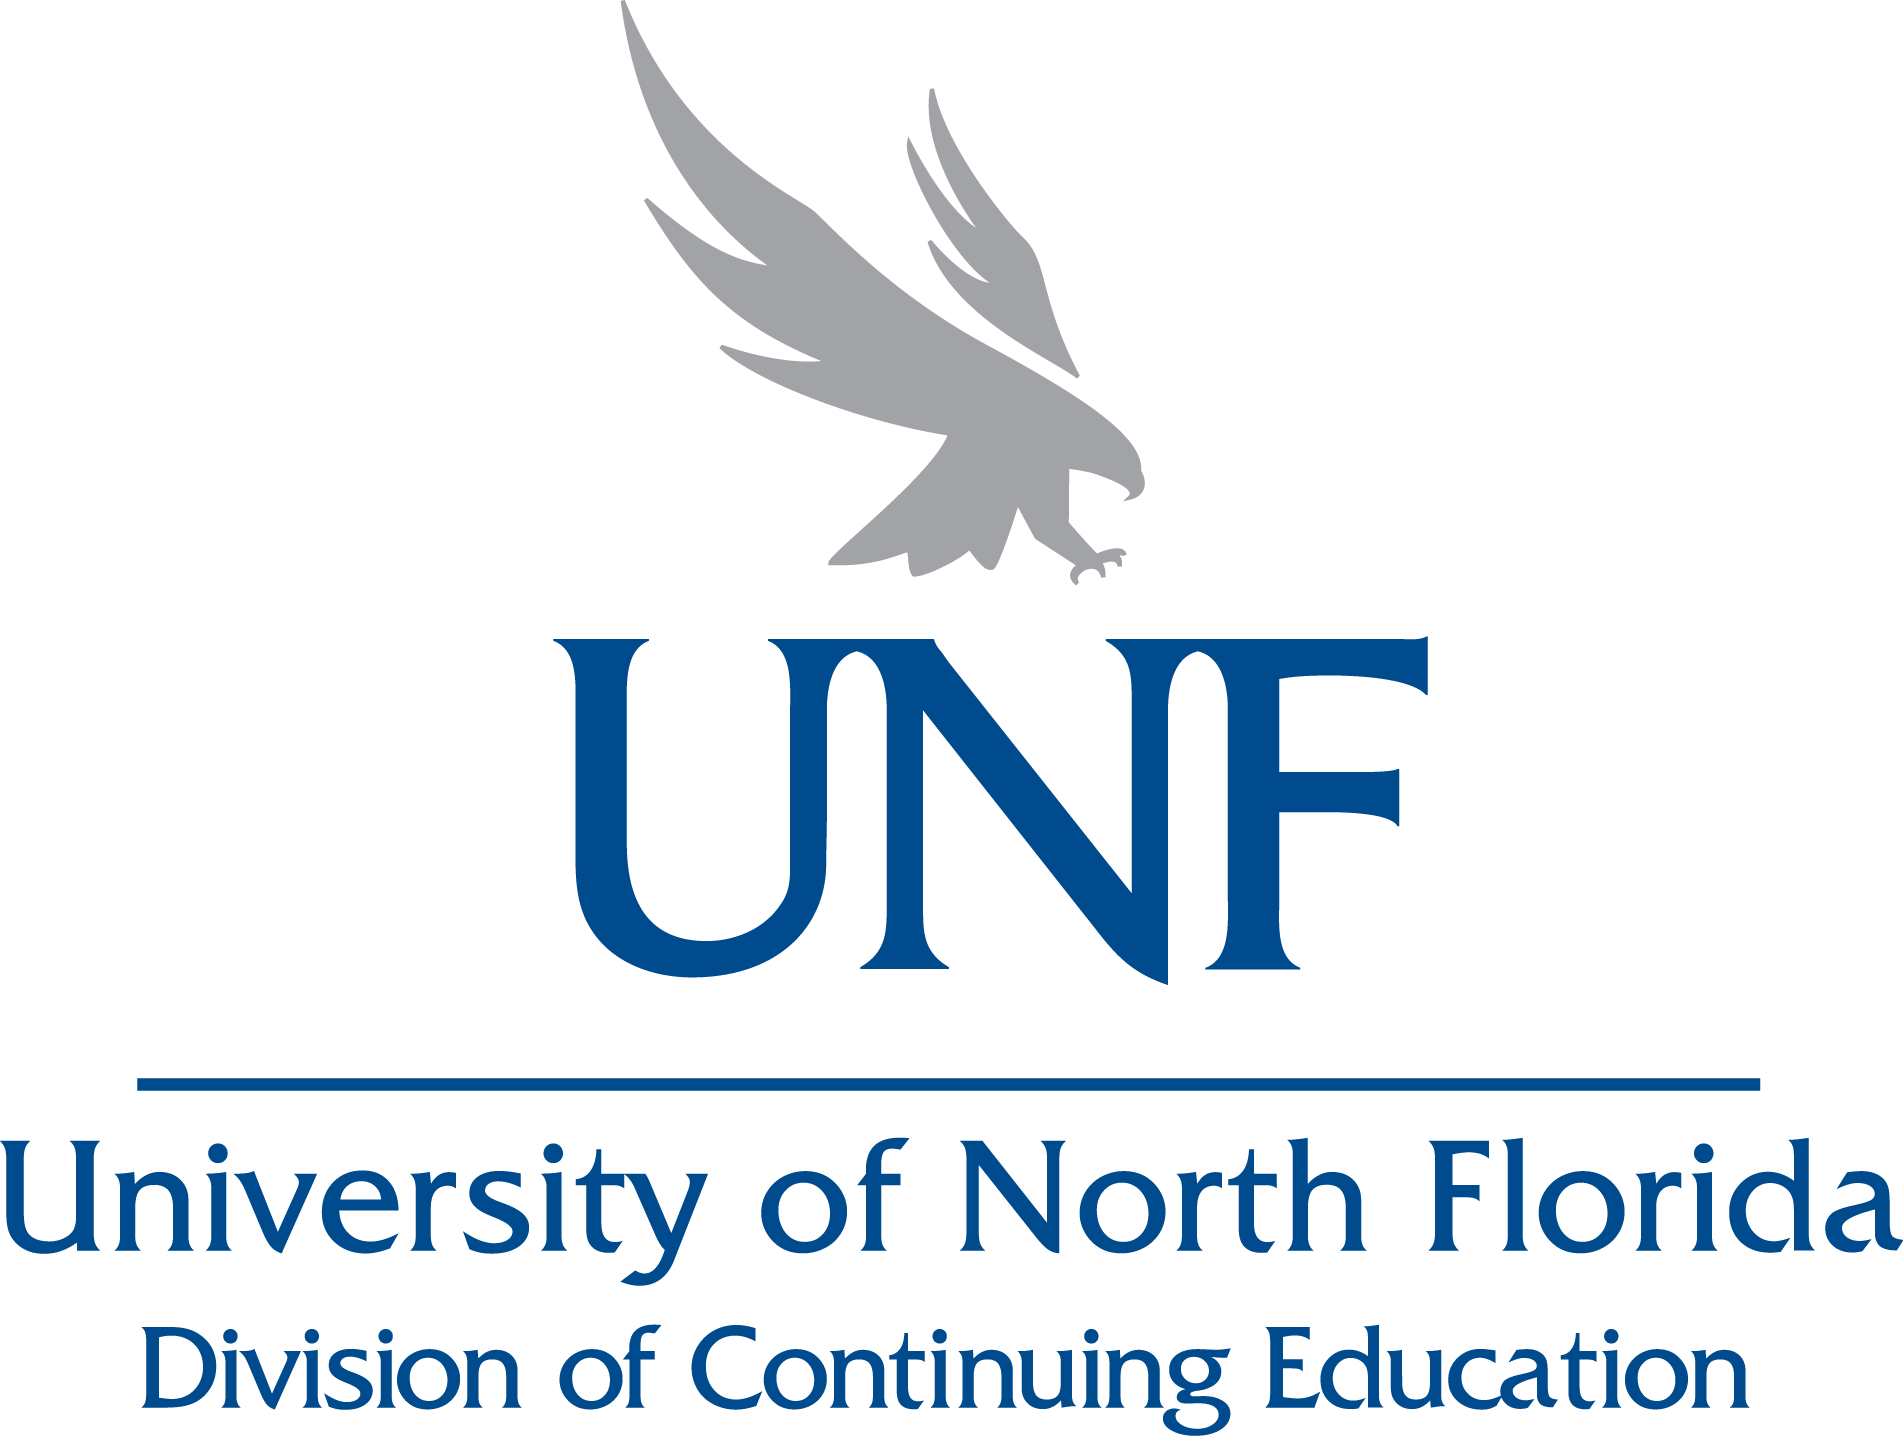 University of north florida logo png. Career step